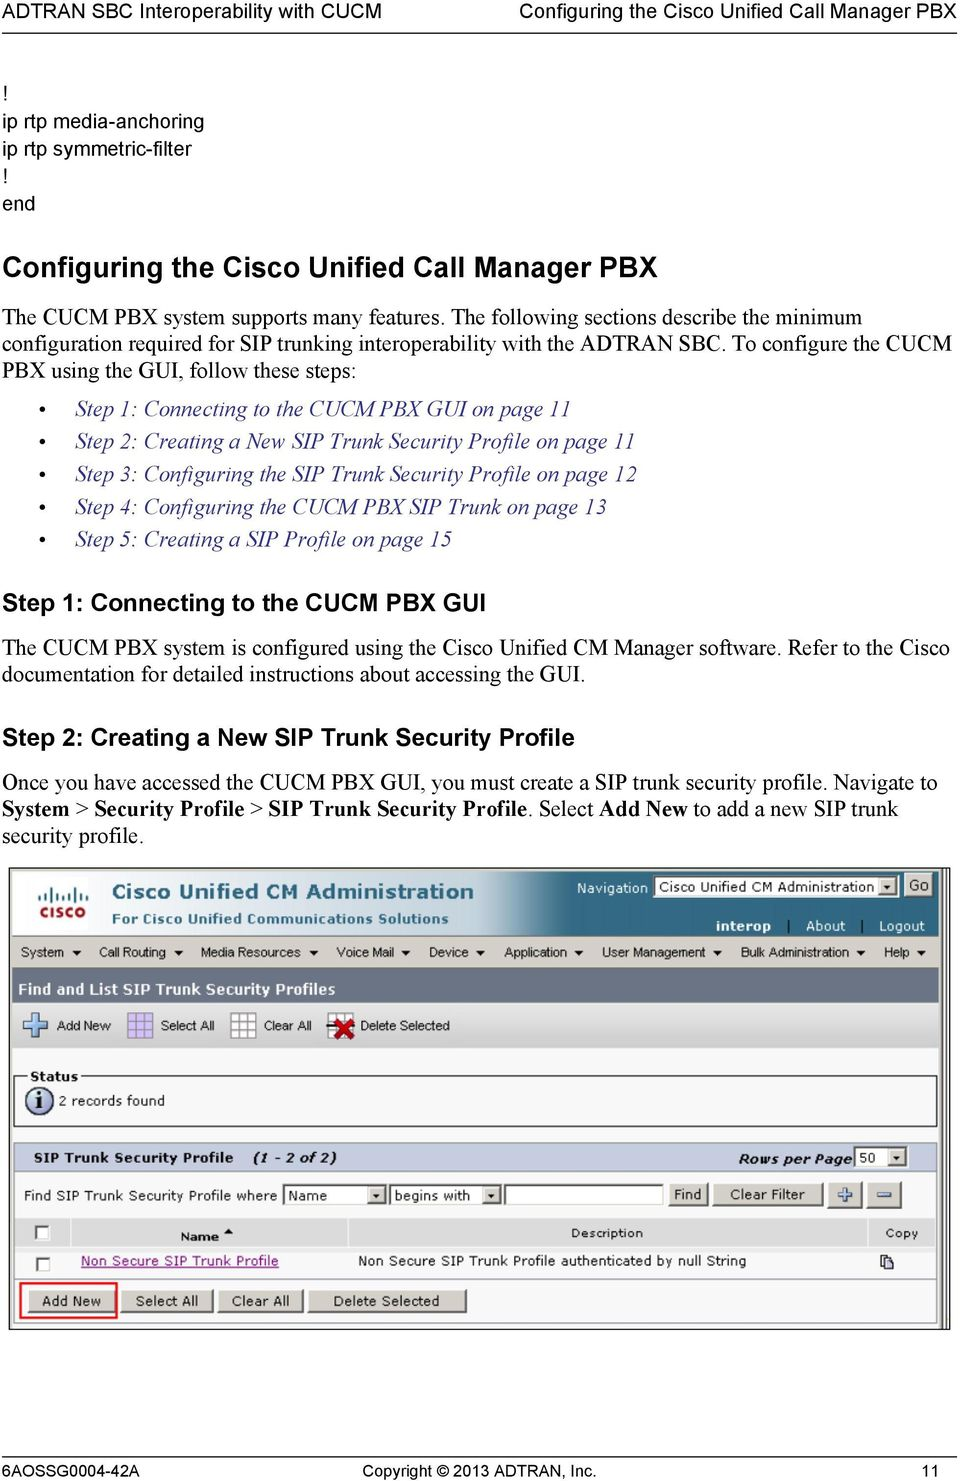 To configure the CUCM PBX using the GUI, follow these steps: Step 1: Connecting to the CUCM PBX GUI on page 11 Step 2: Creating a New SIP Trunk Security Profile on page 11 Step 3: Configuring the SIP